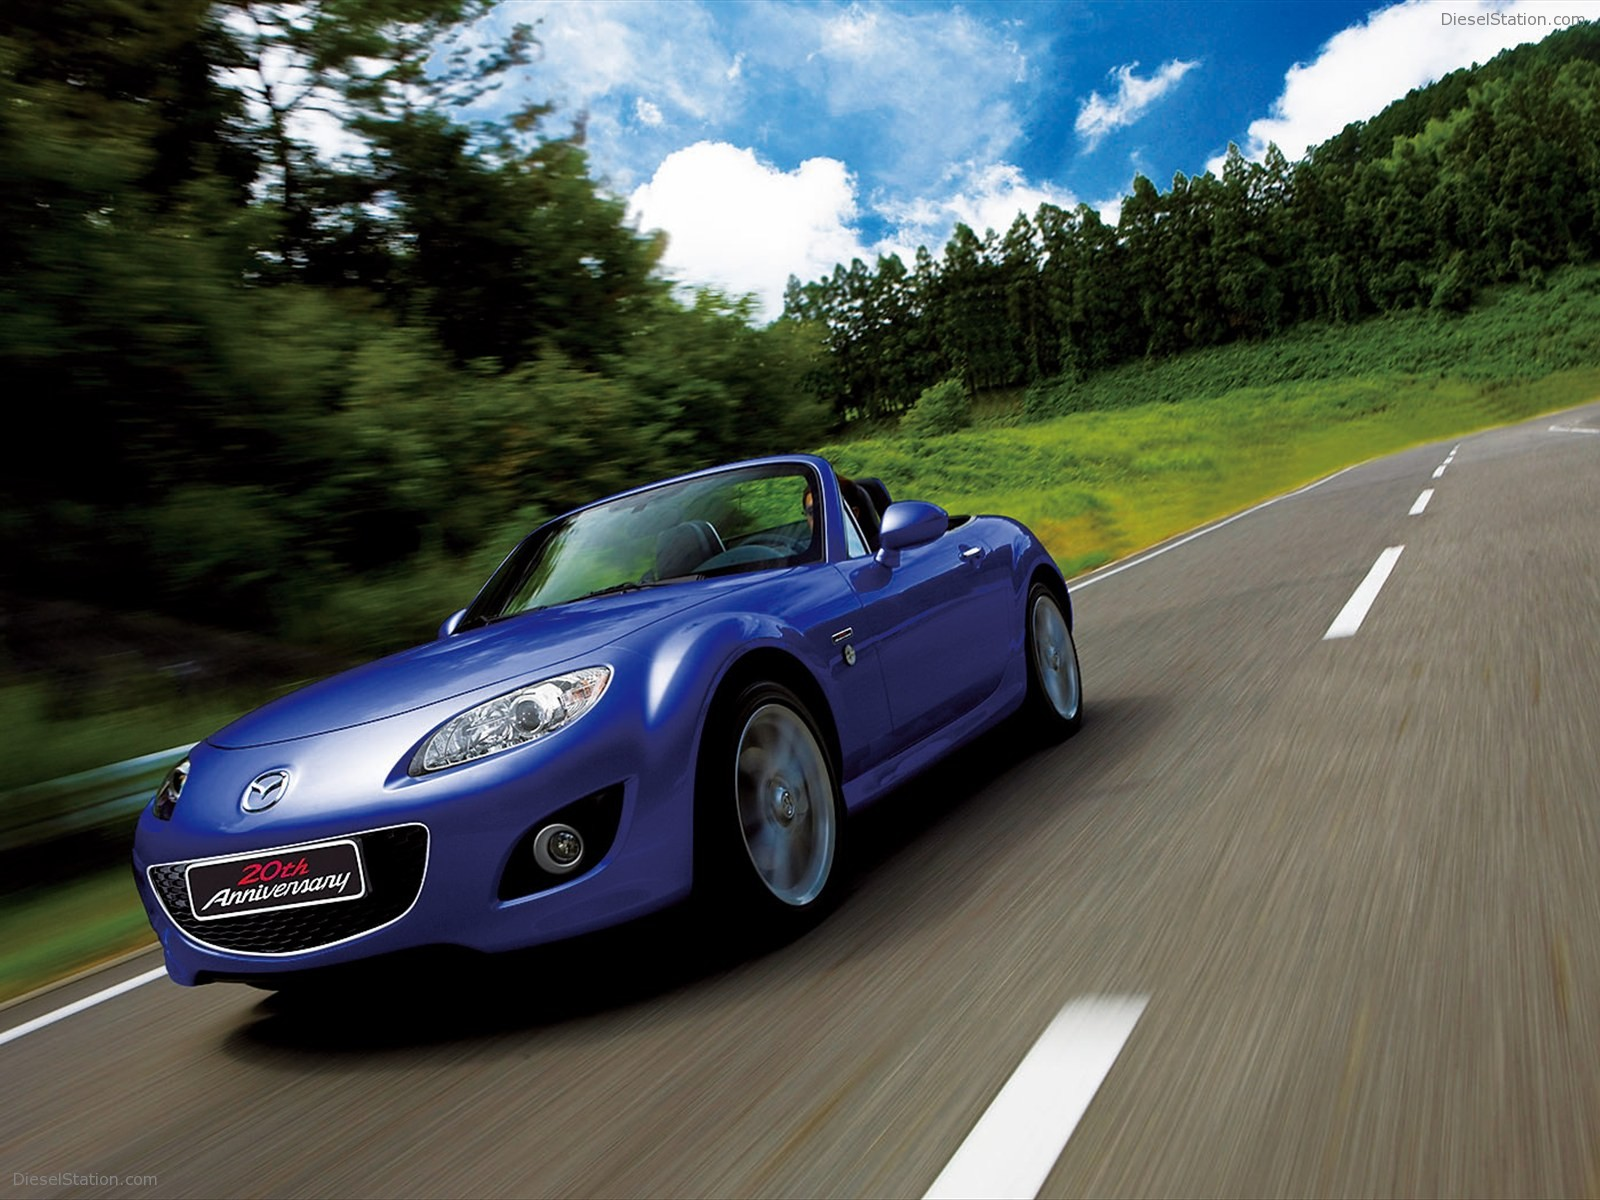 Mazda MX-5 Special Edition (EU model). Published On : Jul 02, 2012